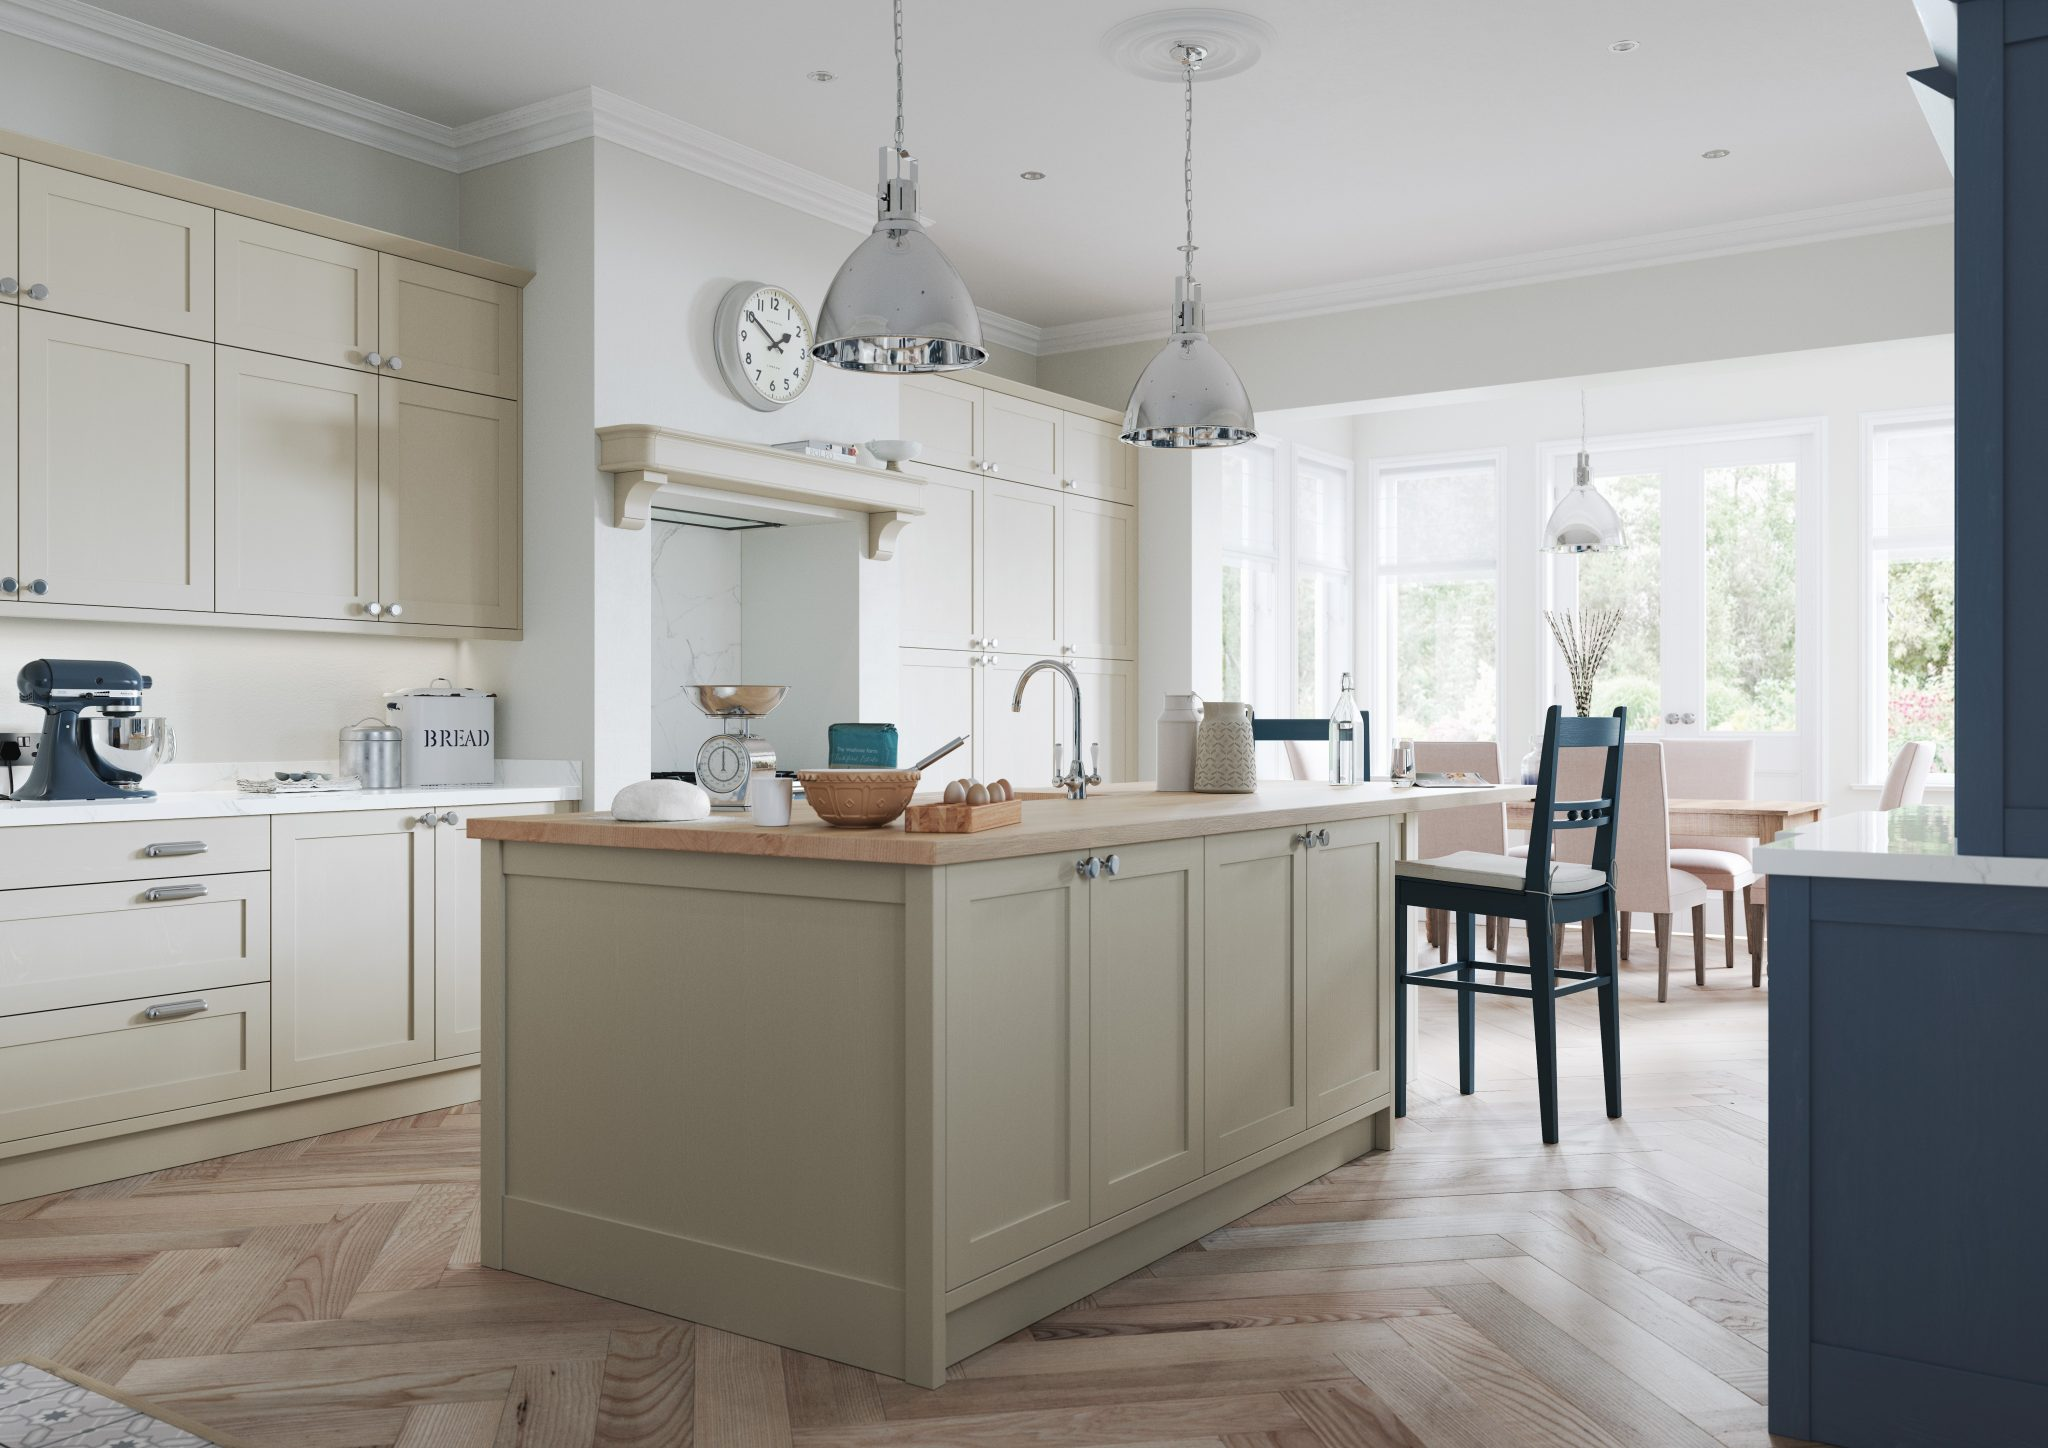 Shaker style kitchen with narrow door painted in airforce blue and stone with kitchen island, kitchens france